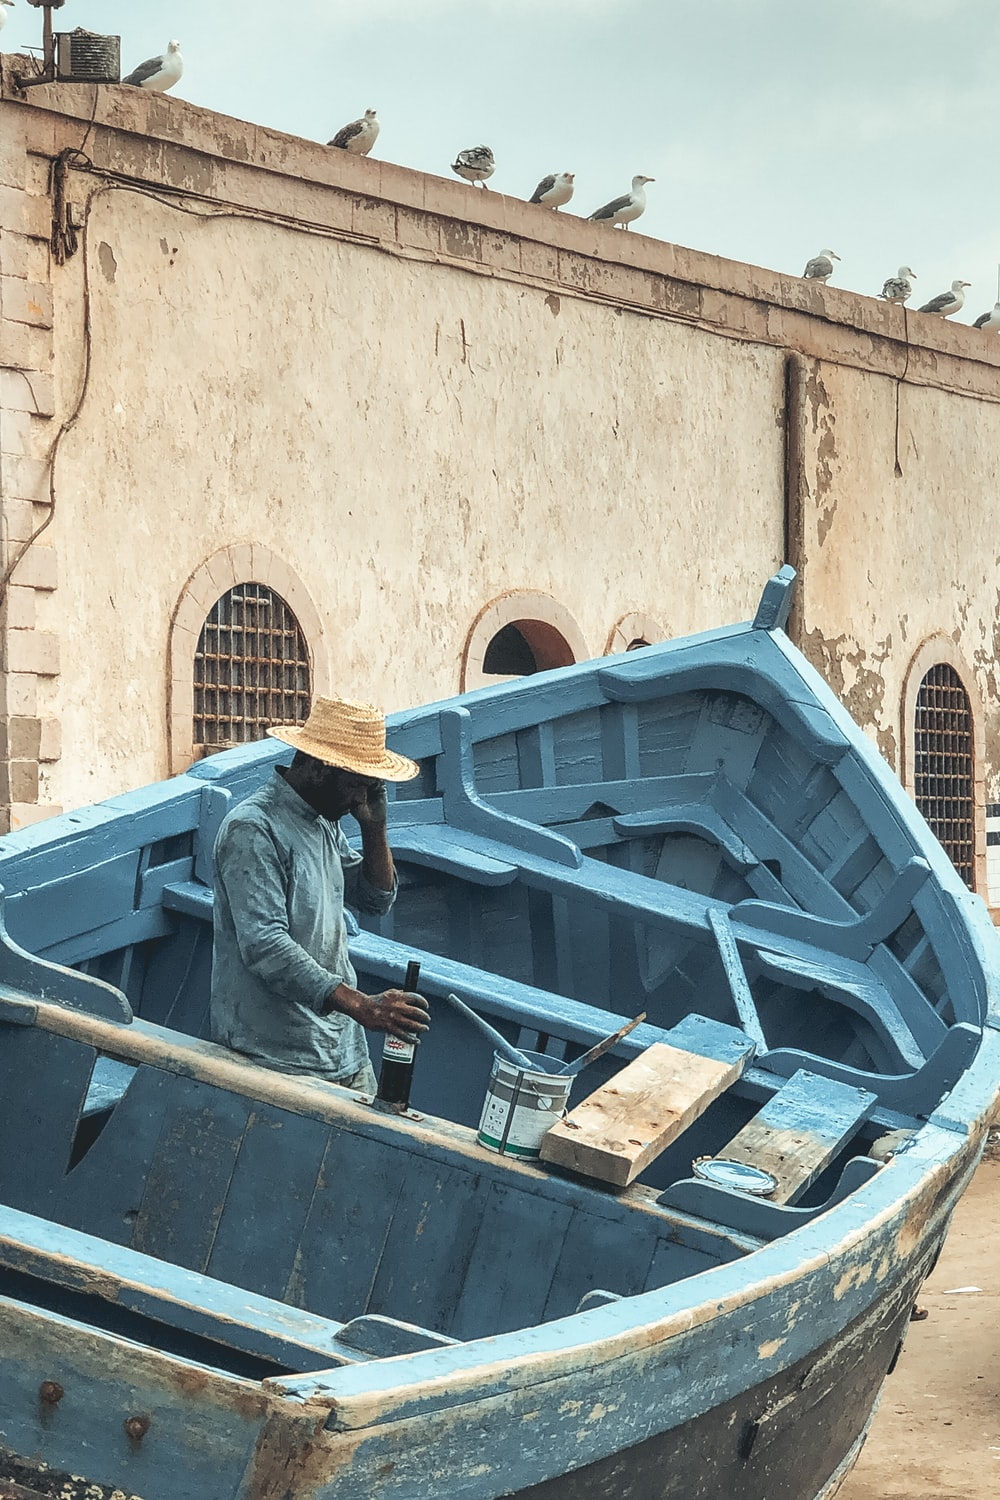 man in teal boat